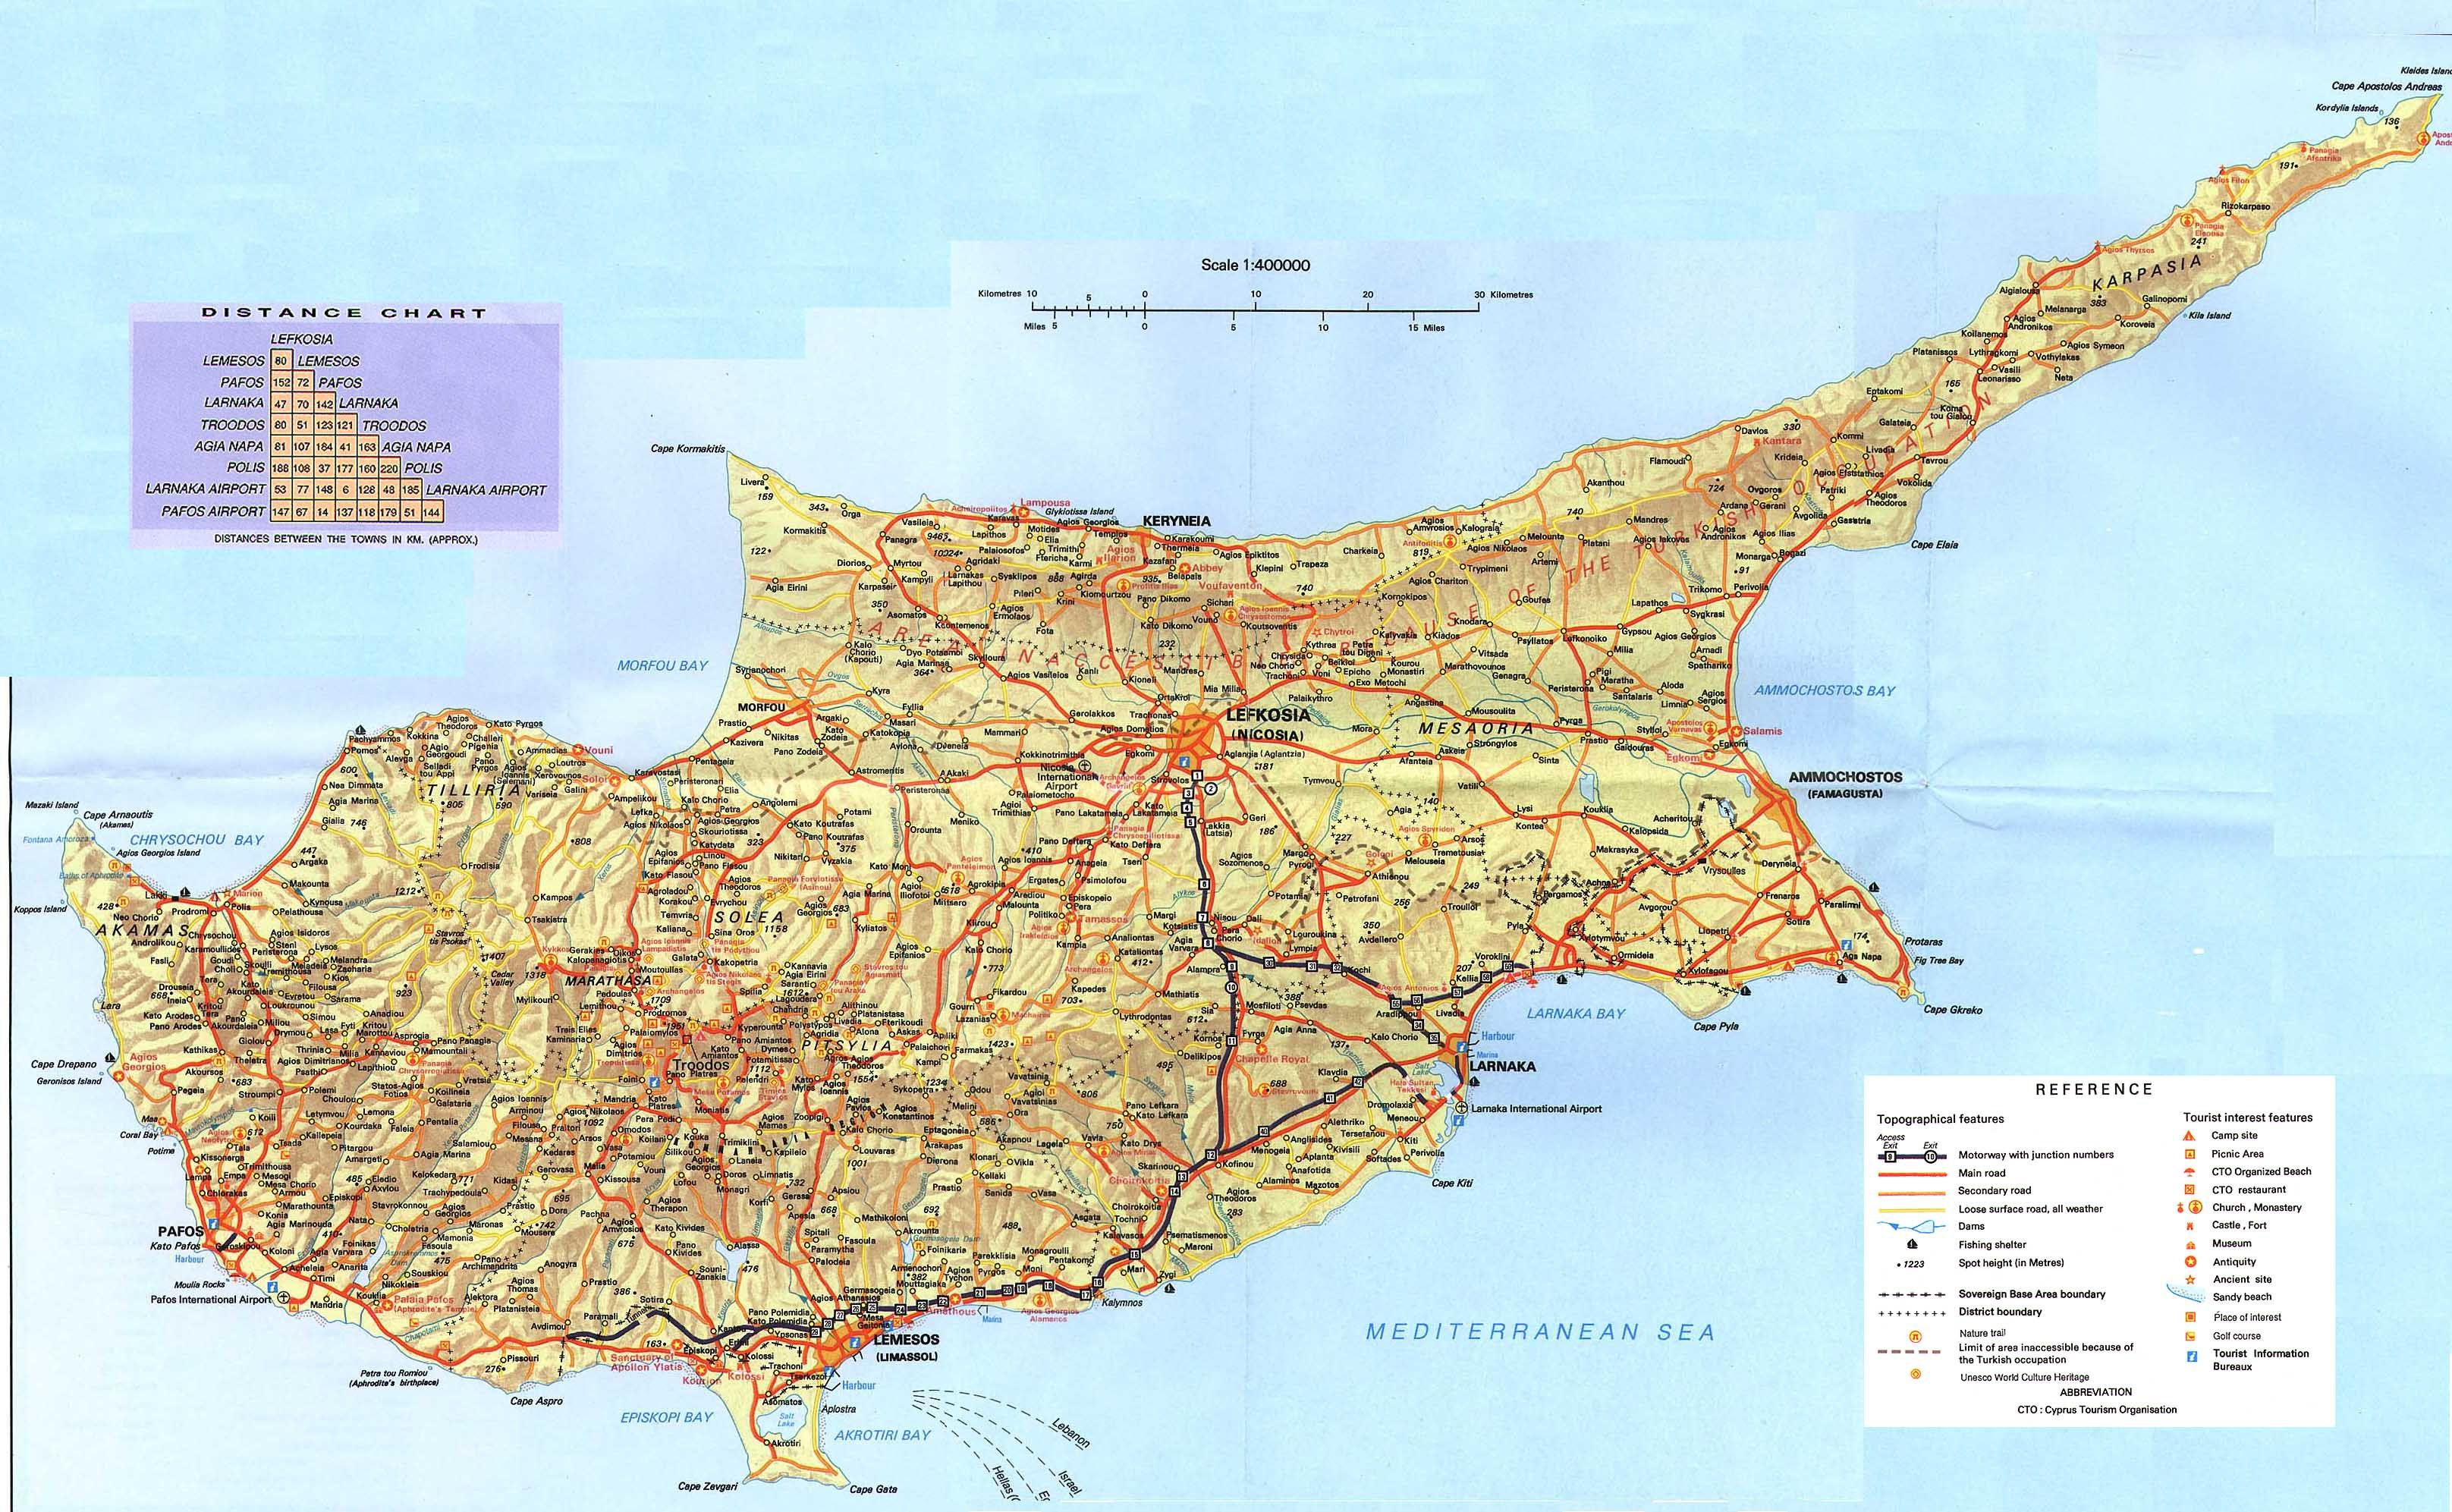 Cyprus chypre pinterest scale map cyprus and paphos large scale map of cyprus offered by astrofegia apartments ideal place to stay for your holidays in paphos cyprus gumiabroncs Images